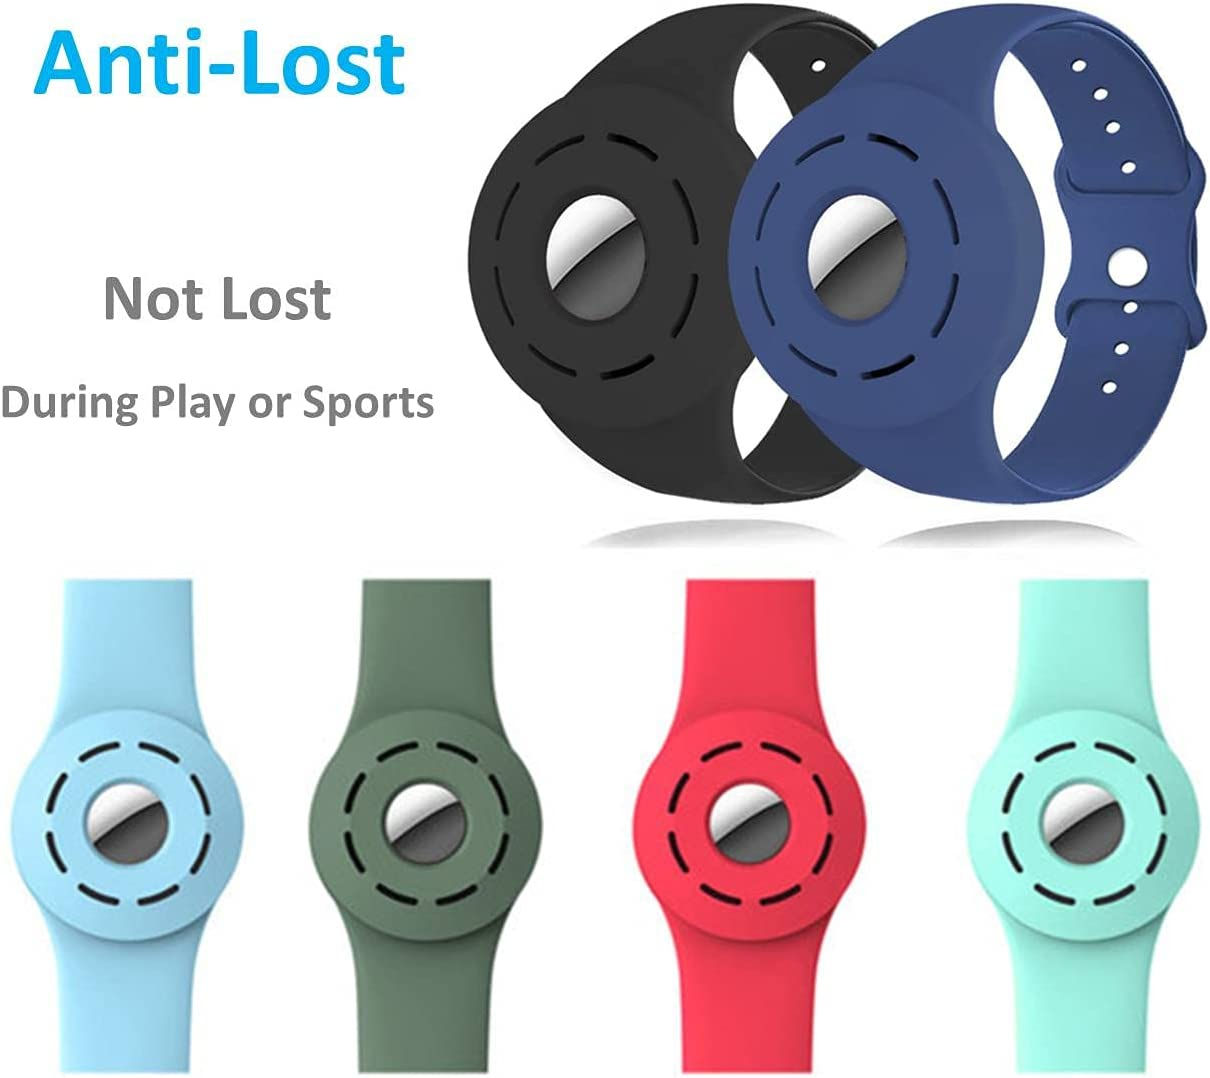 Soft Silicone Band Case for Airtag , Anti-Lost Wristband Case Cover for Children and Old Man , Airtag Band Kids Airtags Bracelet Protective Cover Compatible with Apple AirTag 2021 (Light Blue)